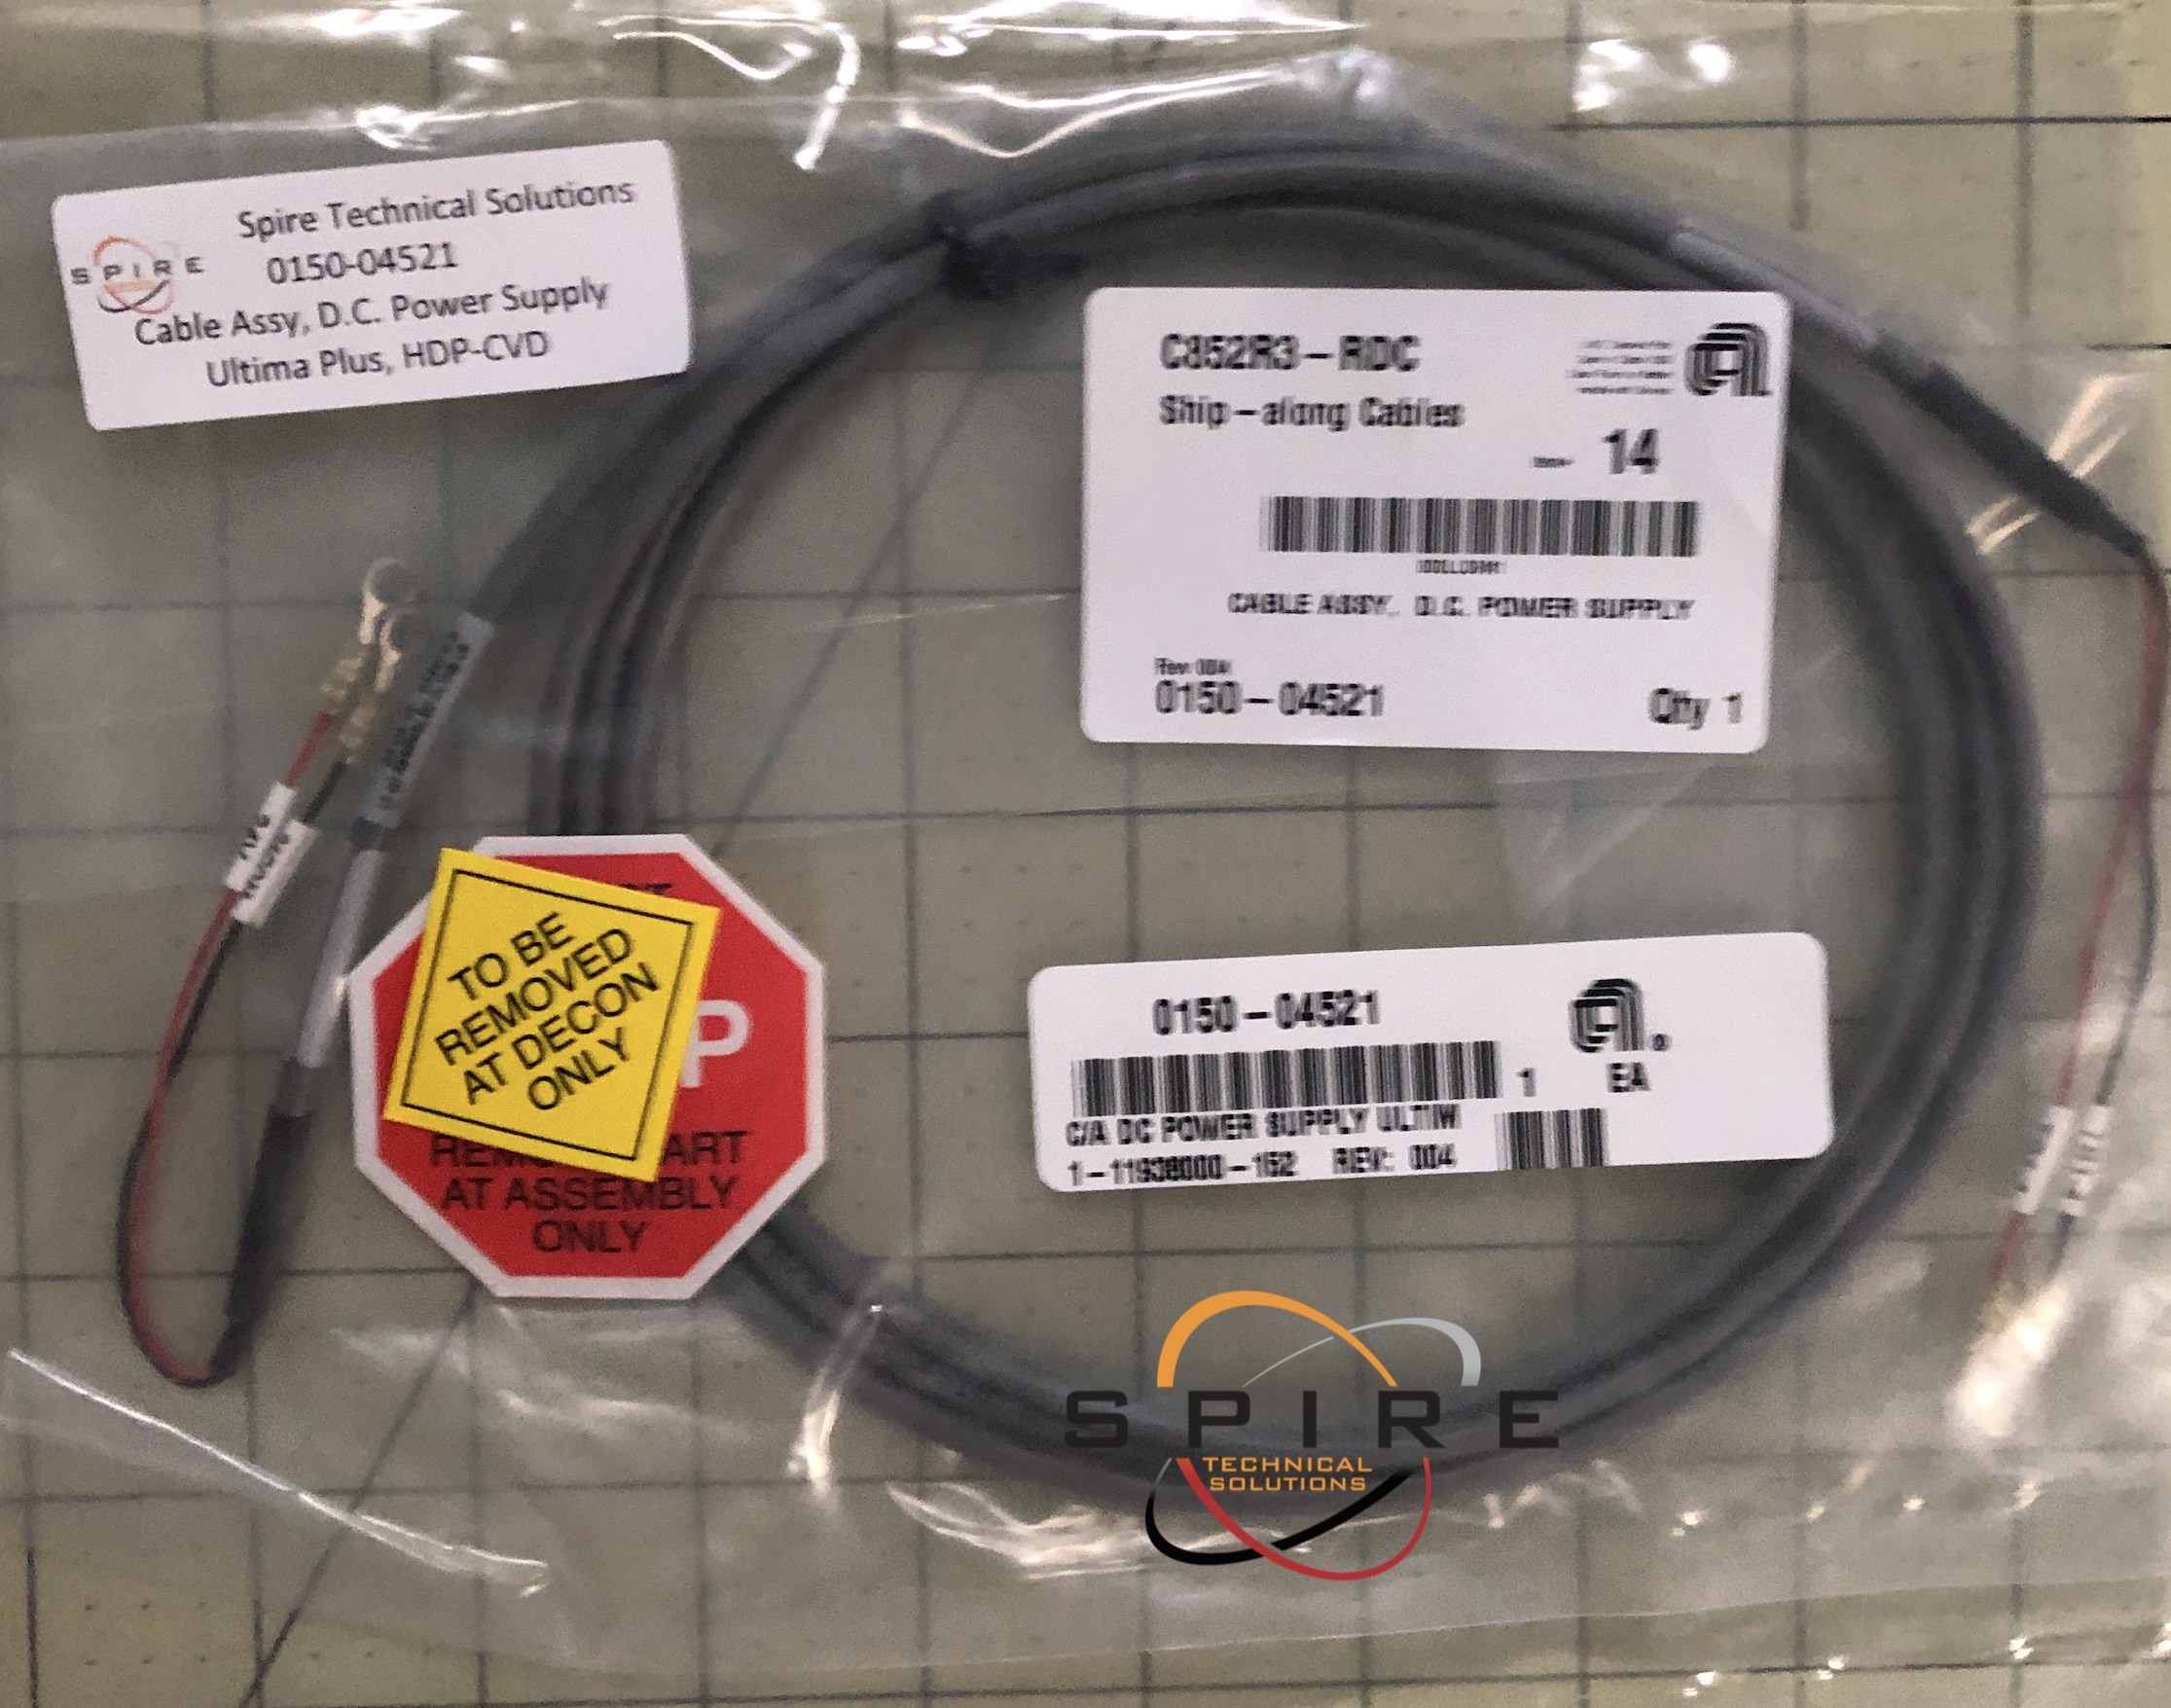 Cable Assy, D.C. Power Supply Ultima Plus, HDP-CVD